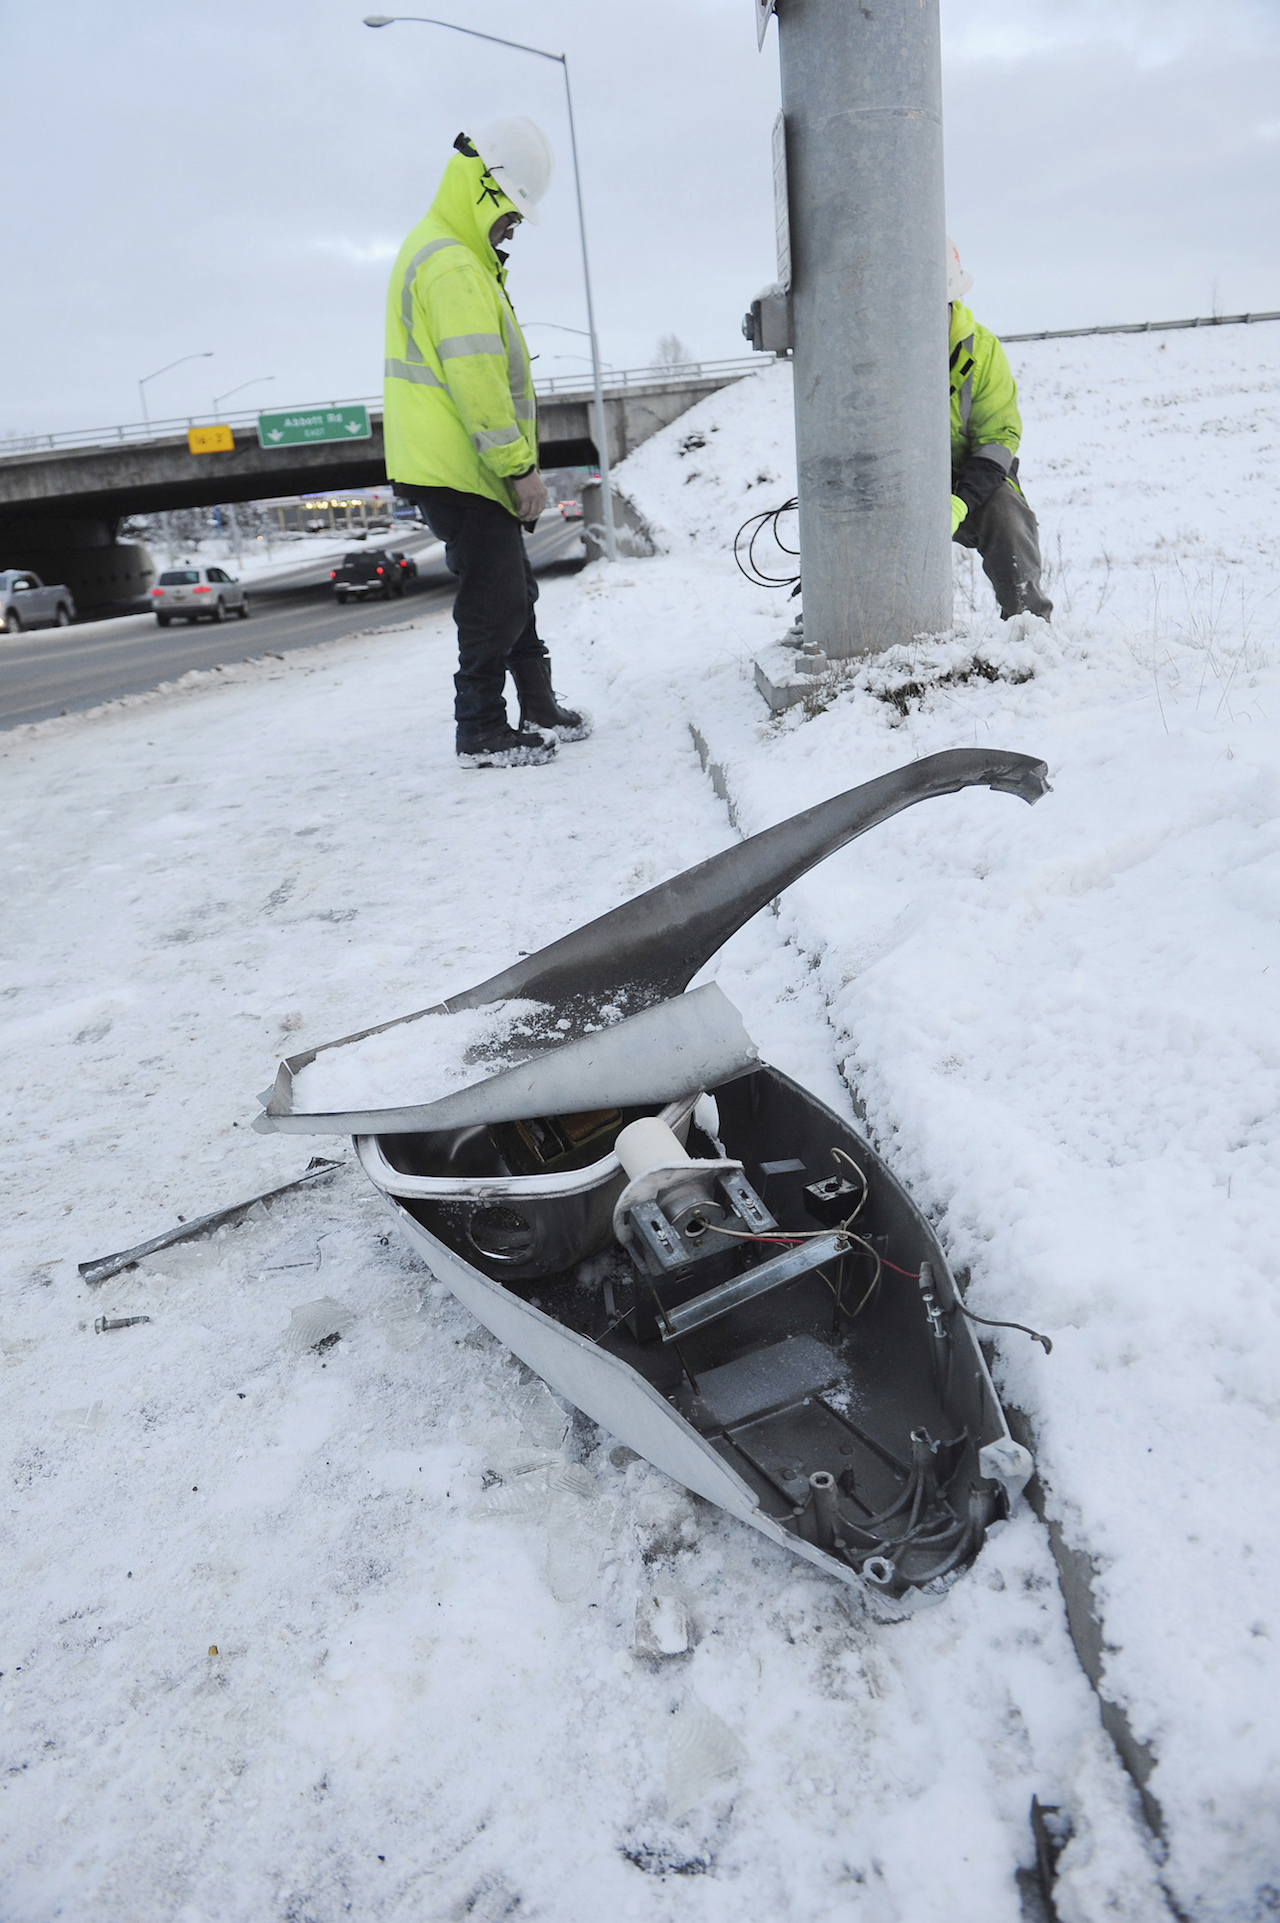 <div class='meta'><div class='origin-logo' data-origin='AP'></div><span class='caption-text' data-credit='AP Photo/Mike Dinneen'>Energy Services North employees prepare to replace a fallen street light in Anchorage, one of the effects of the morning's earthquake which caused damage to the local area.</span></div>